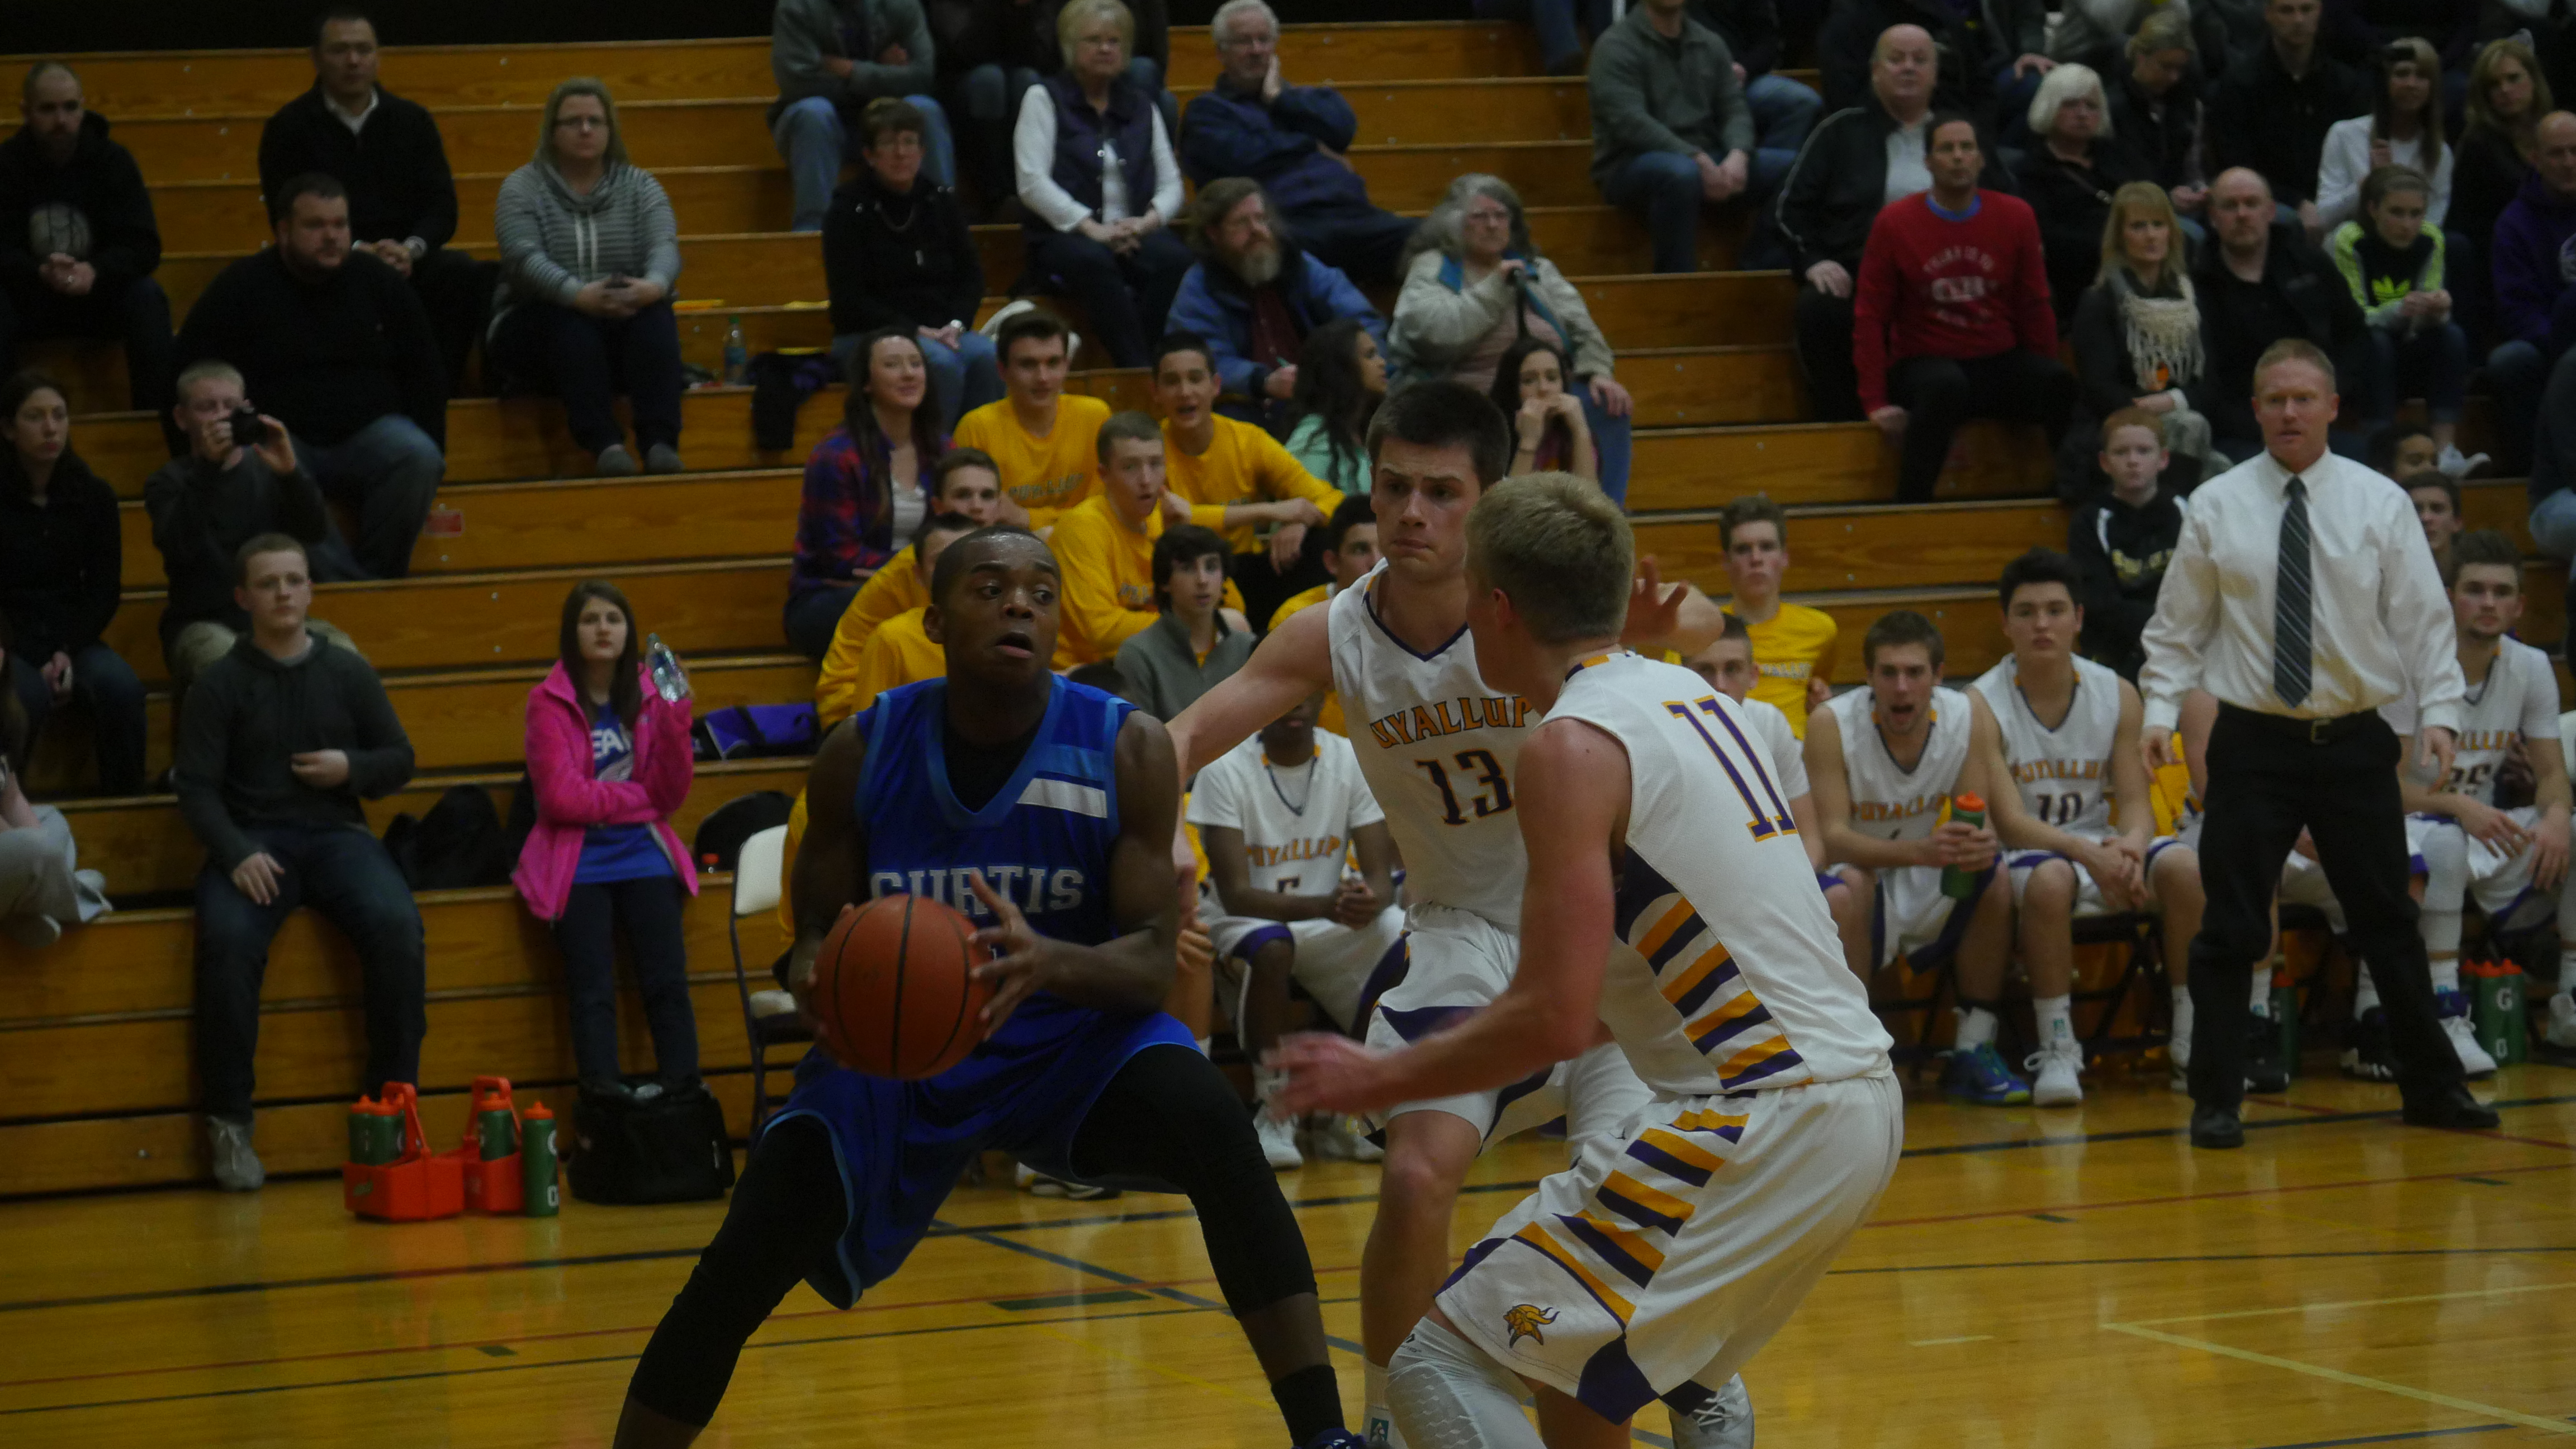 Curtis forward John Moore scored eight of his 24 points in overtime.